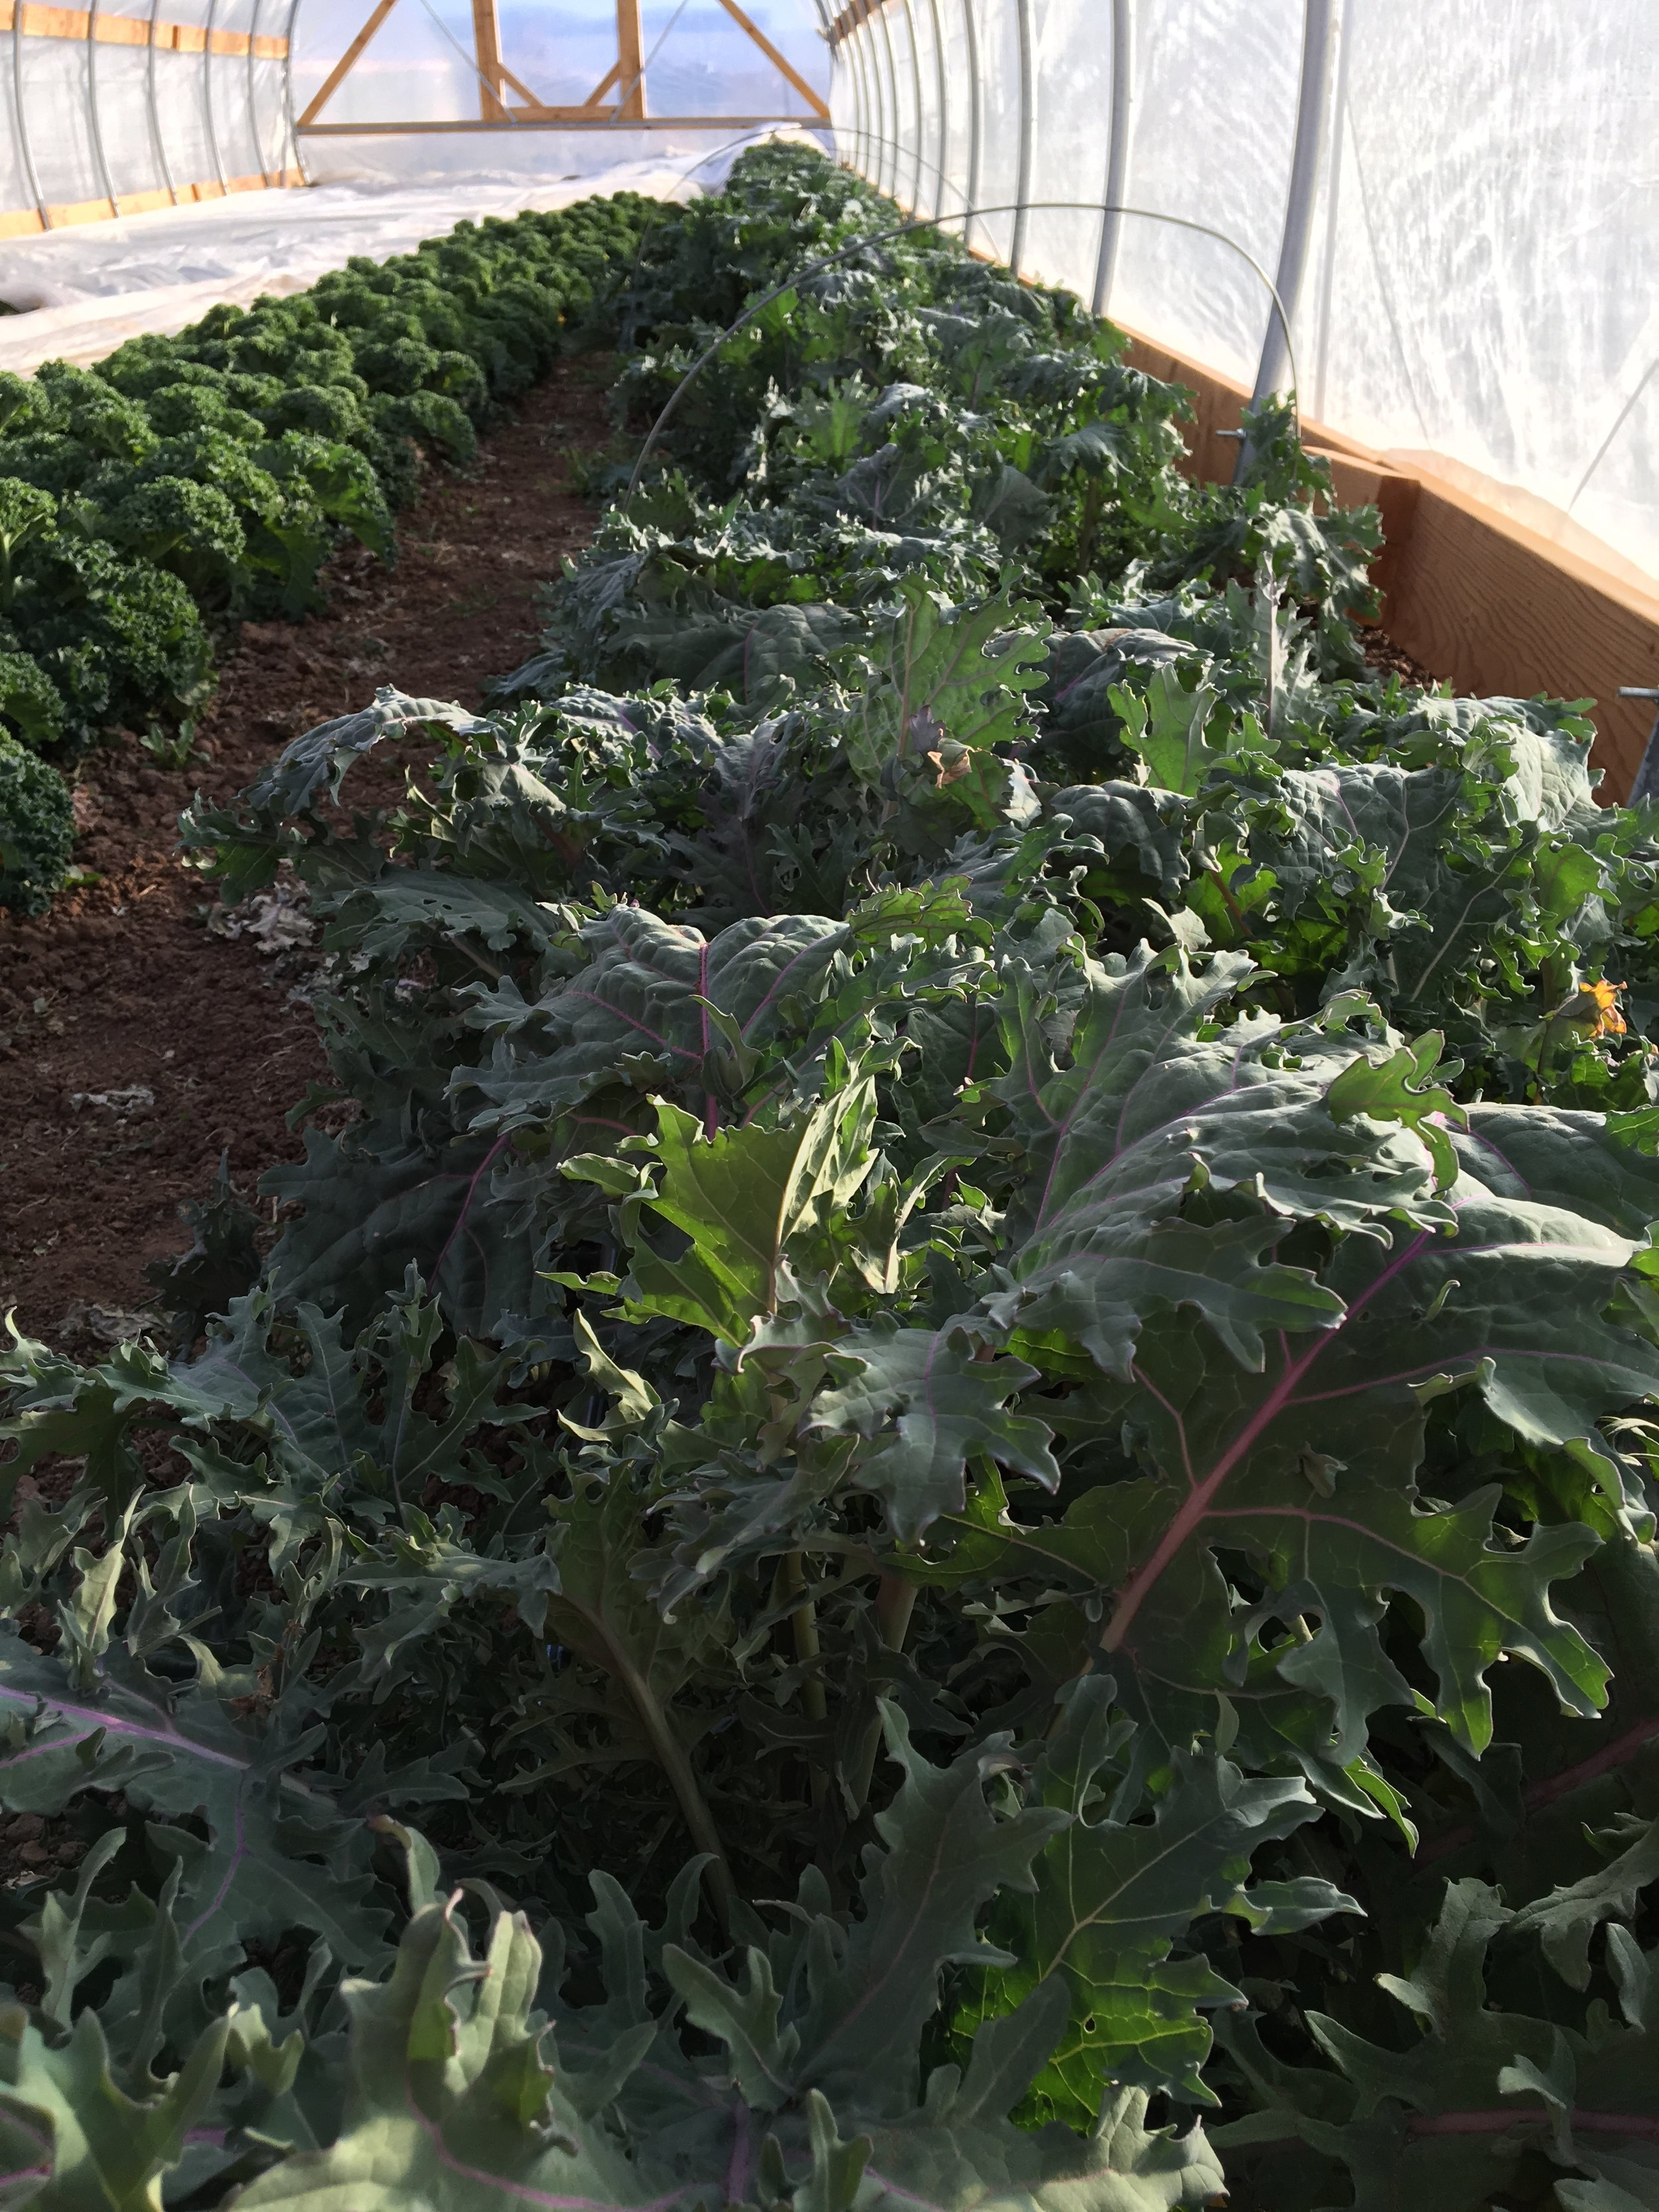 Kale growing in one of the moveable tunnel